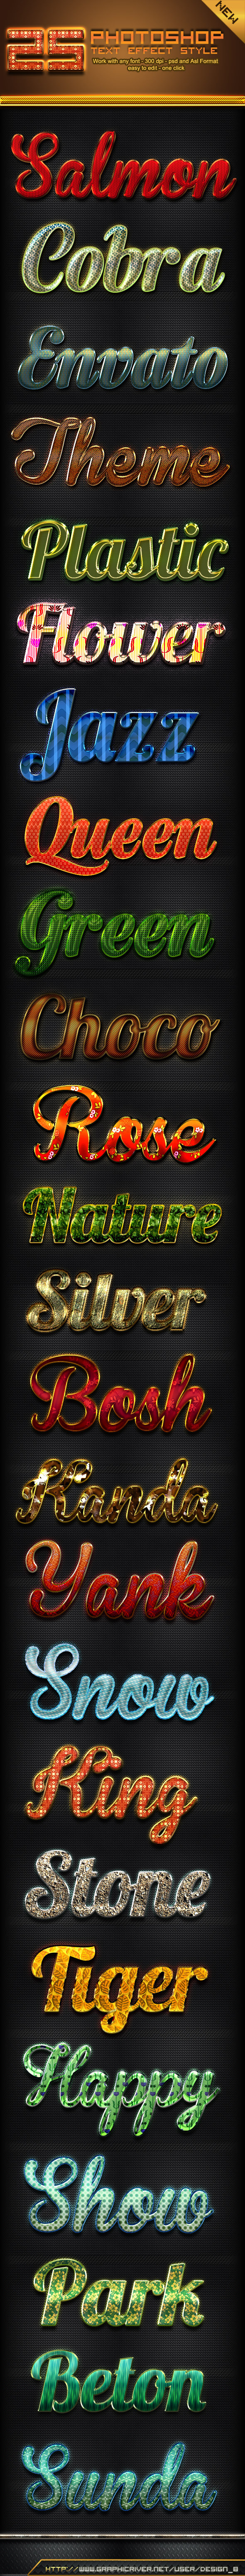 25 Photoshop Text Effect Styles - Text Effects Styles